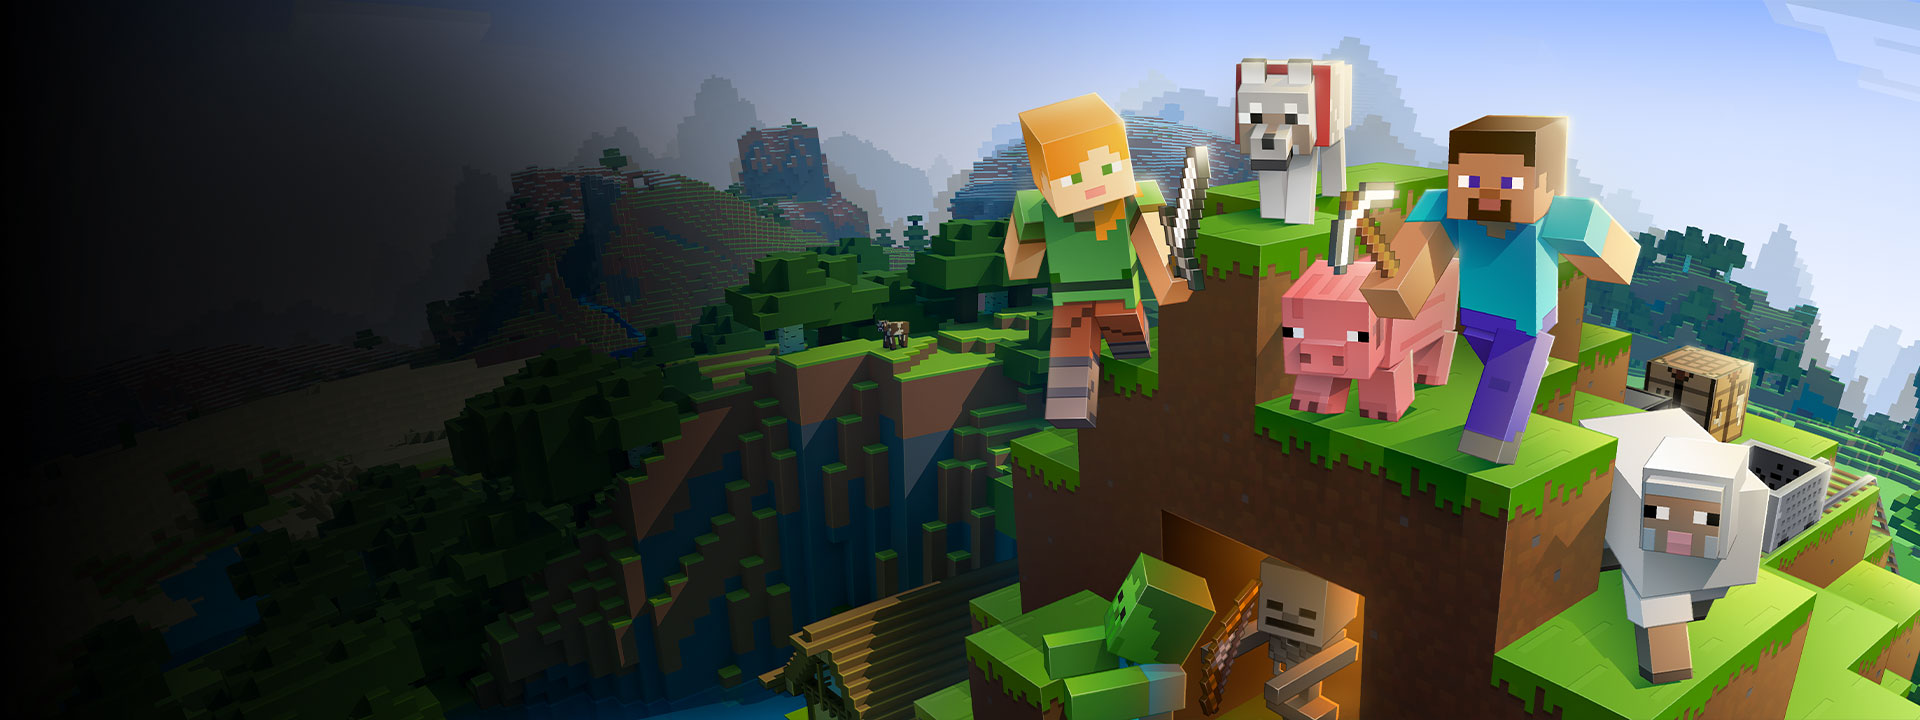 Several characters from Minecraft atop a mountain